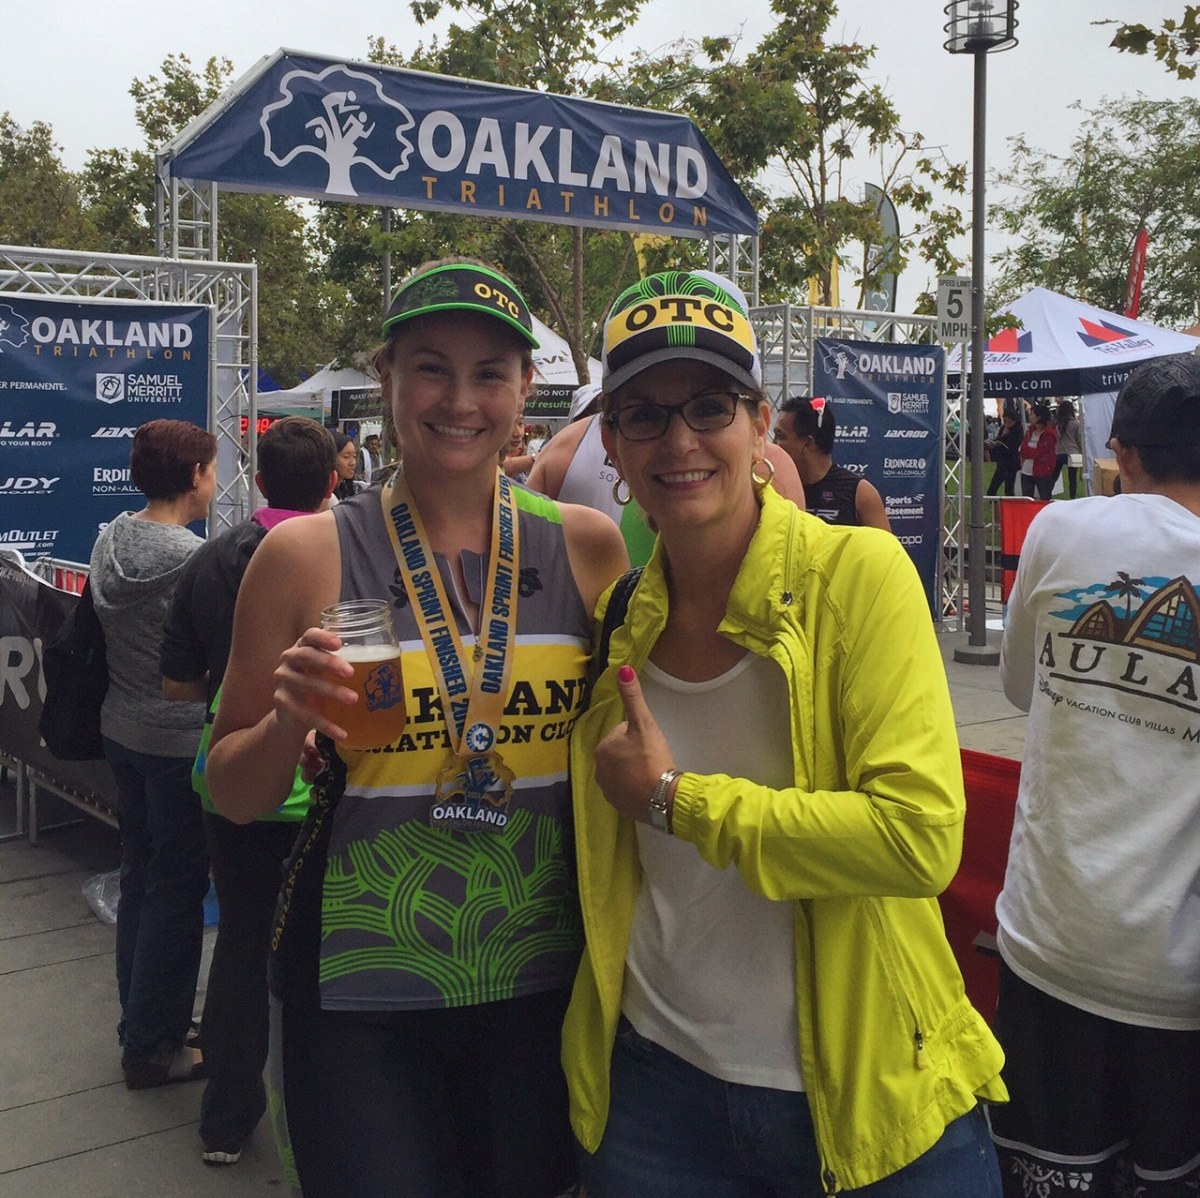 Race Report – Oakland Triathlon Festival